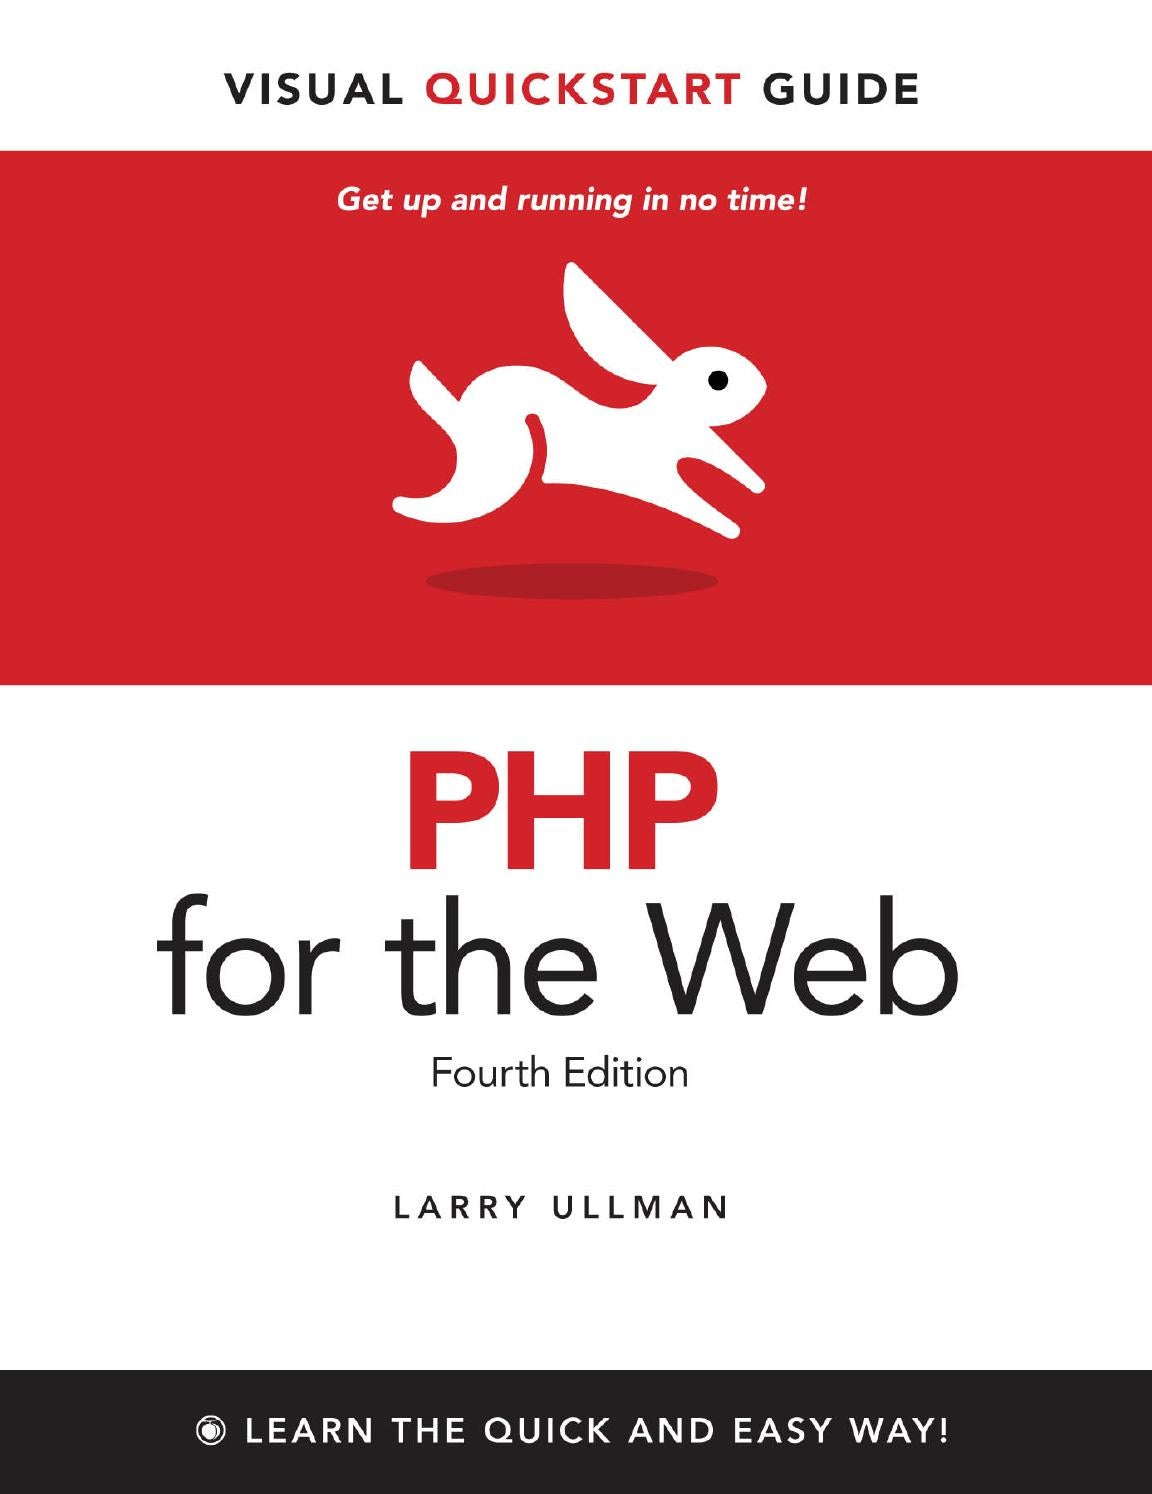 Php for the web visual quickstart guide 4th edition2011bbs by Norbert -  issuu